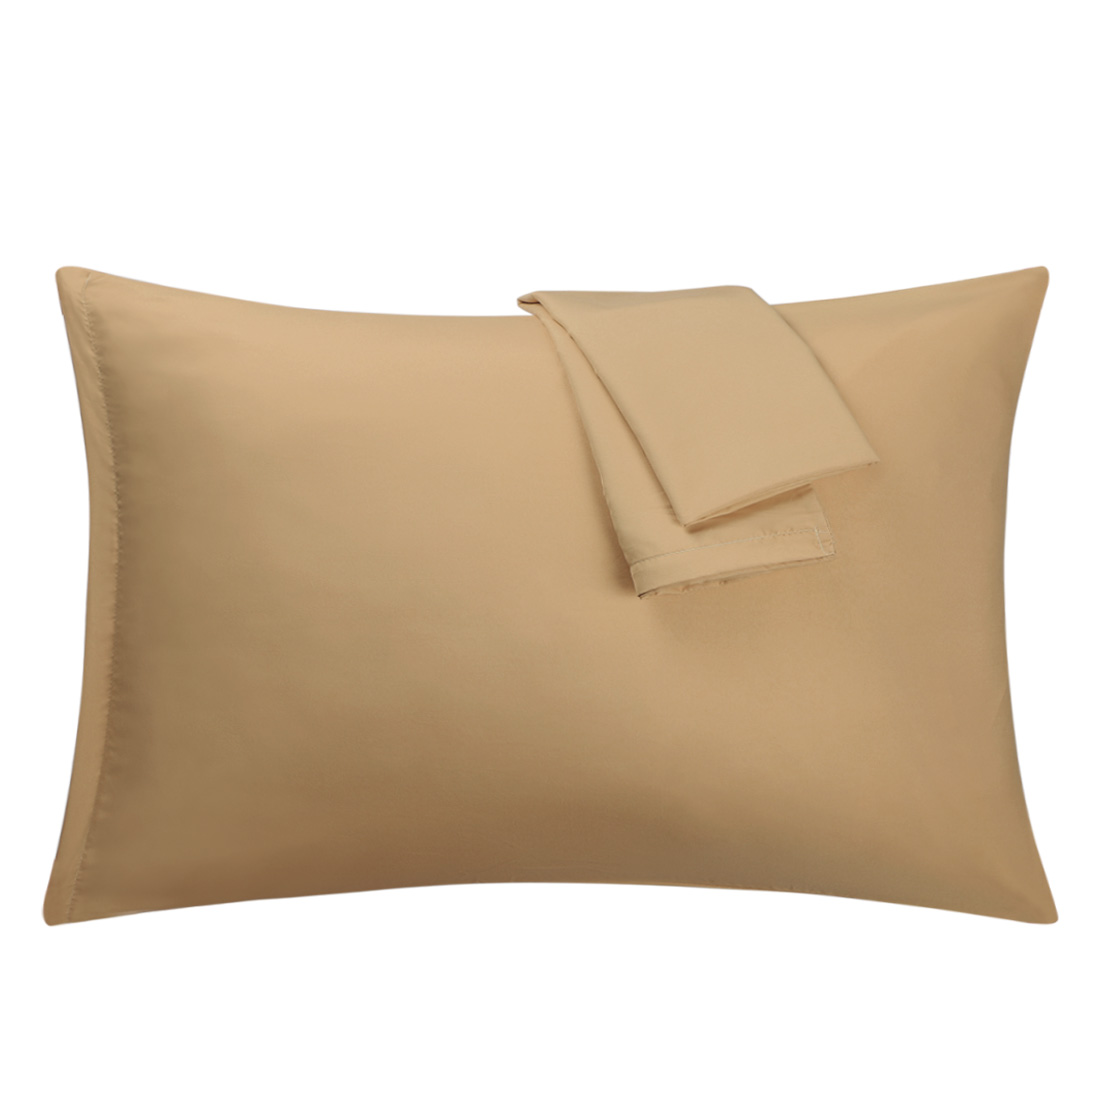 Light Brown Pillowcases Soft Microfiber Pillow Case with Zipper Standard, 2 Pack